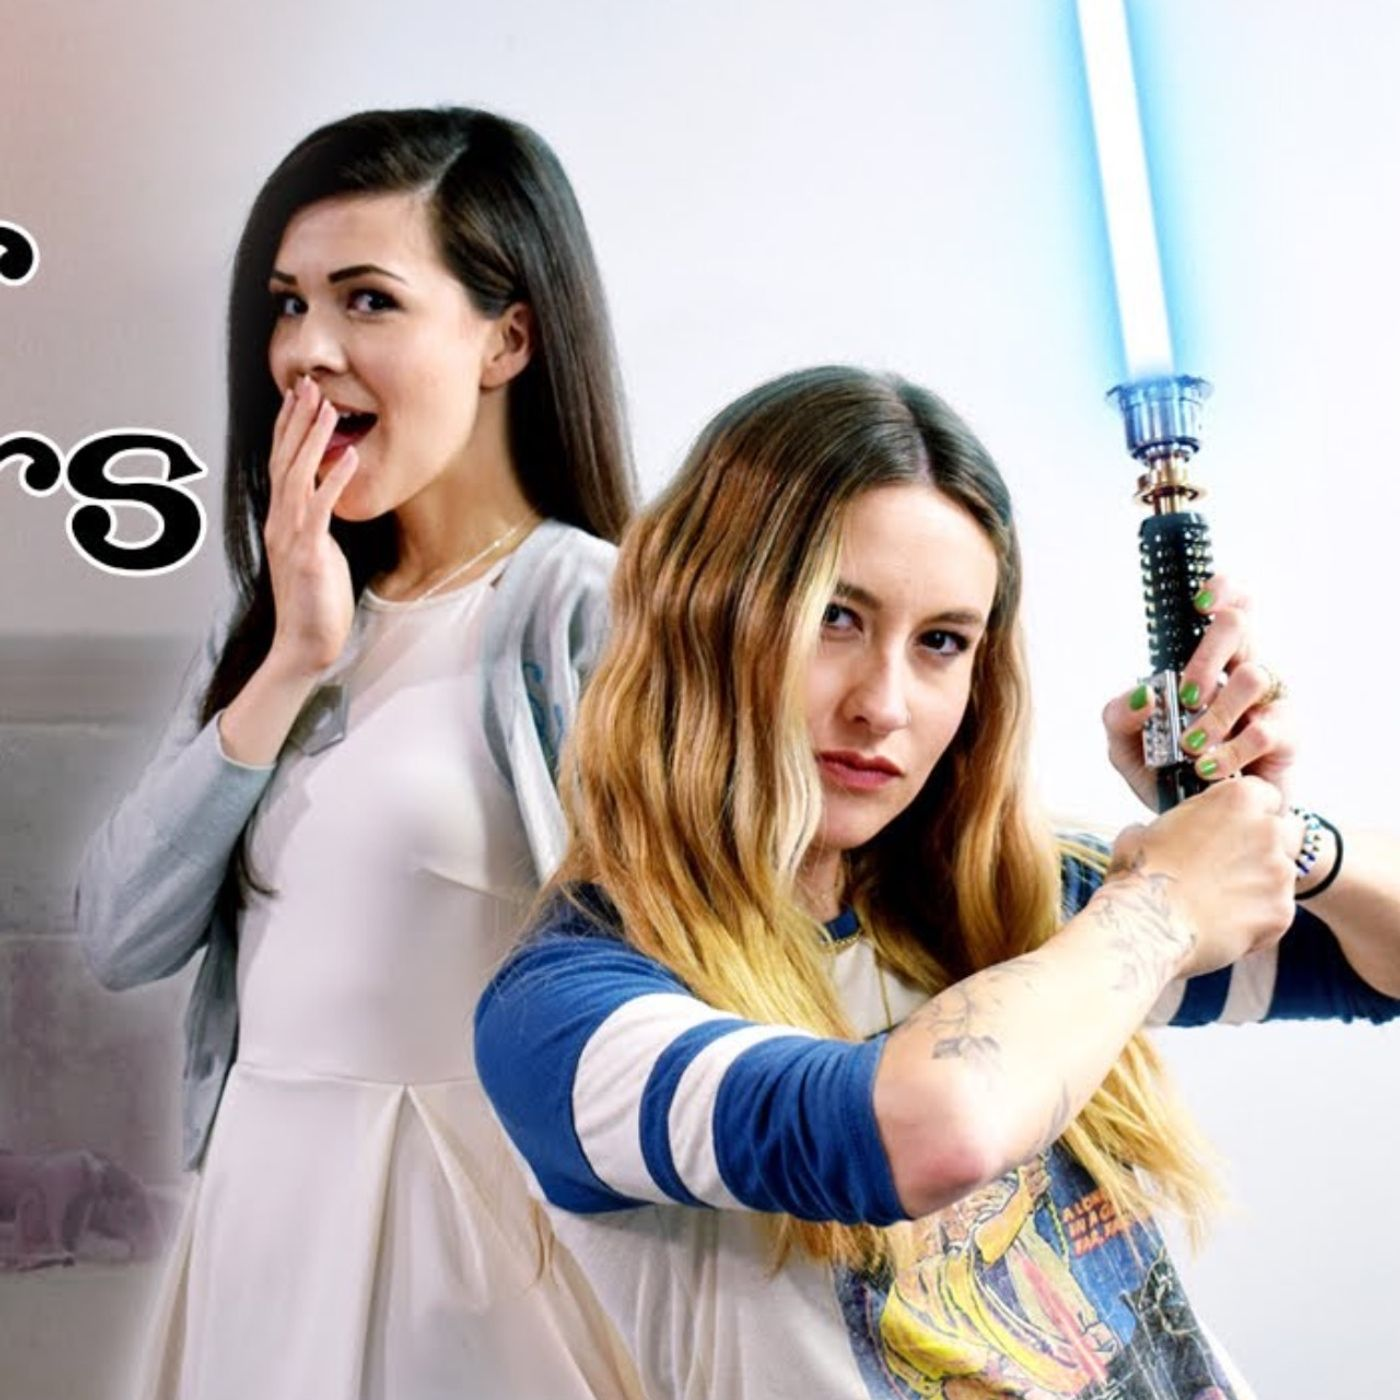 Kyber Sisters - A New Hope (Ep. 7)